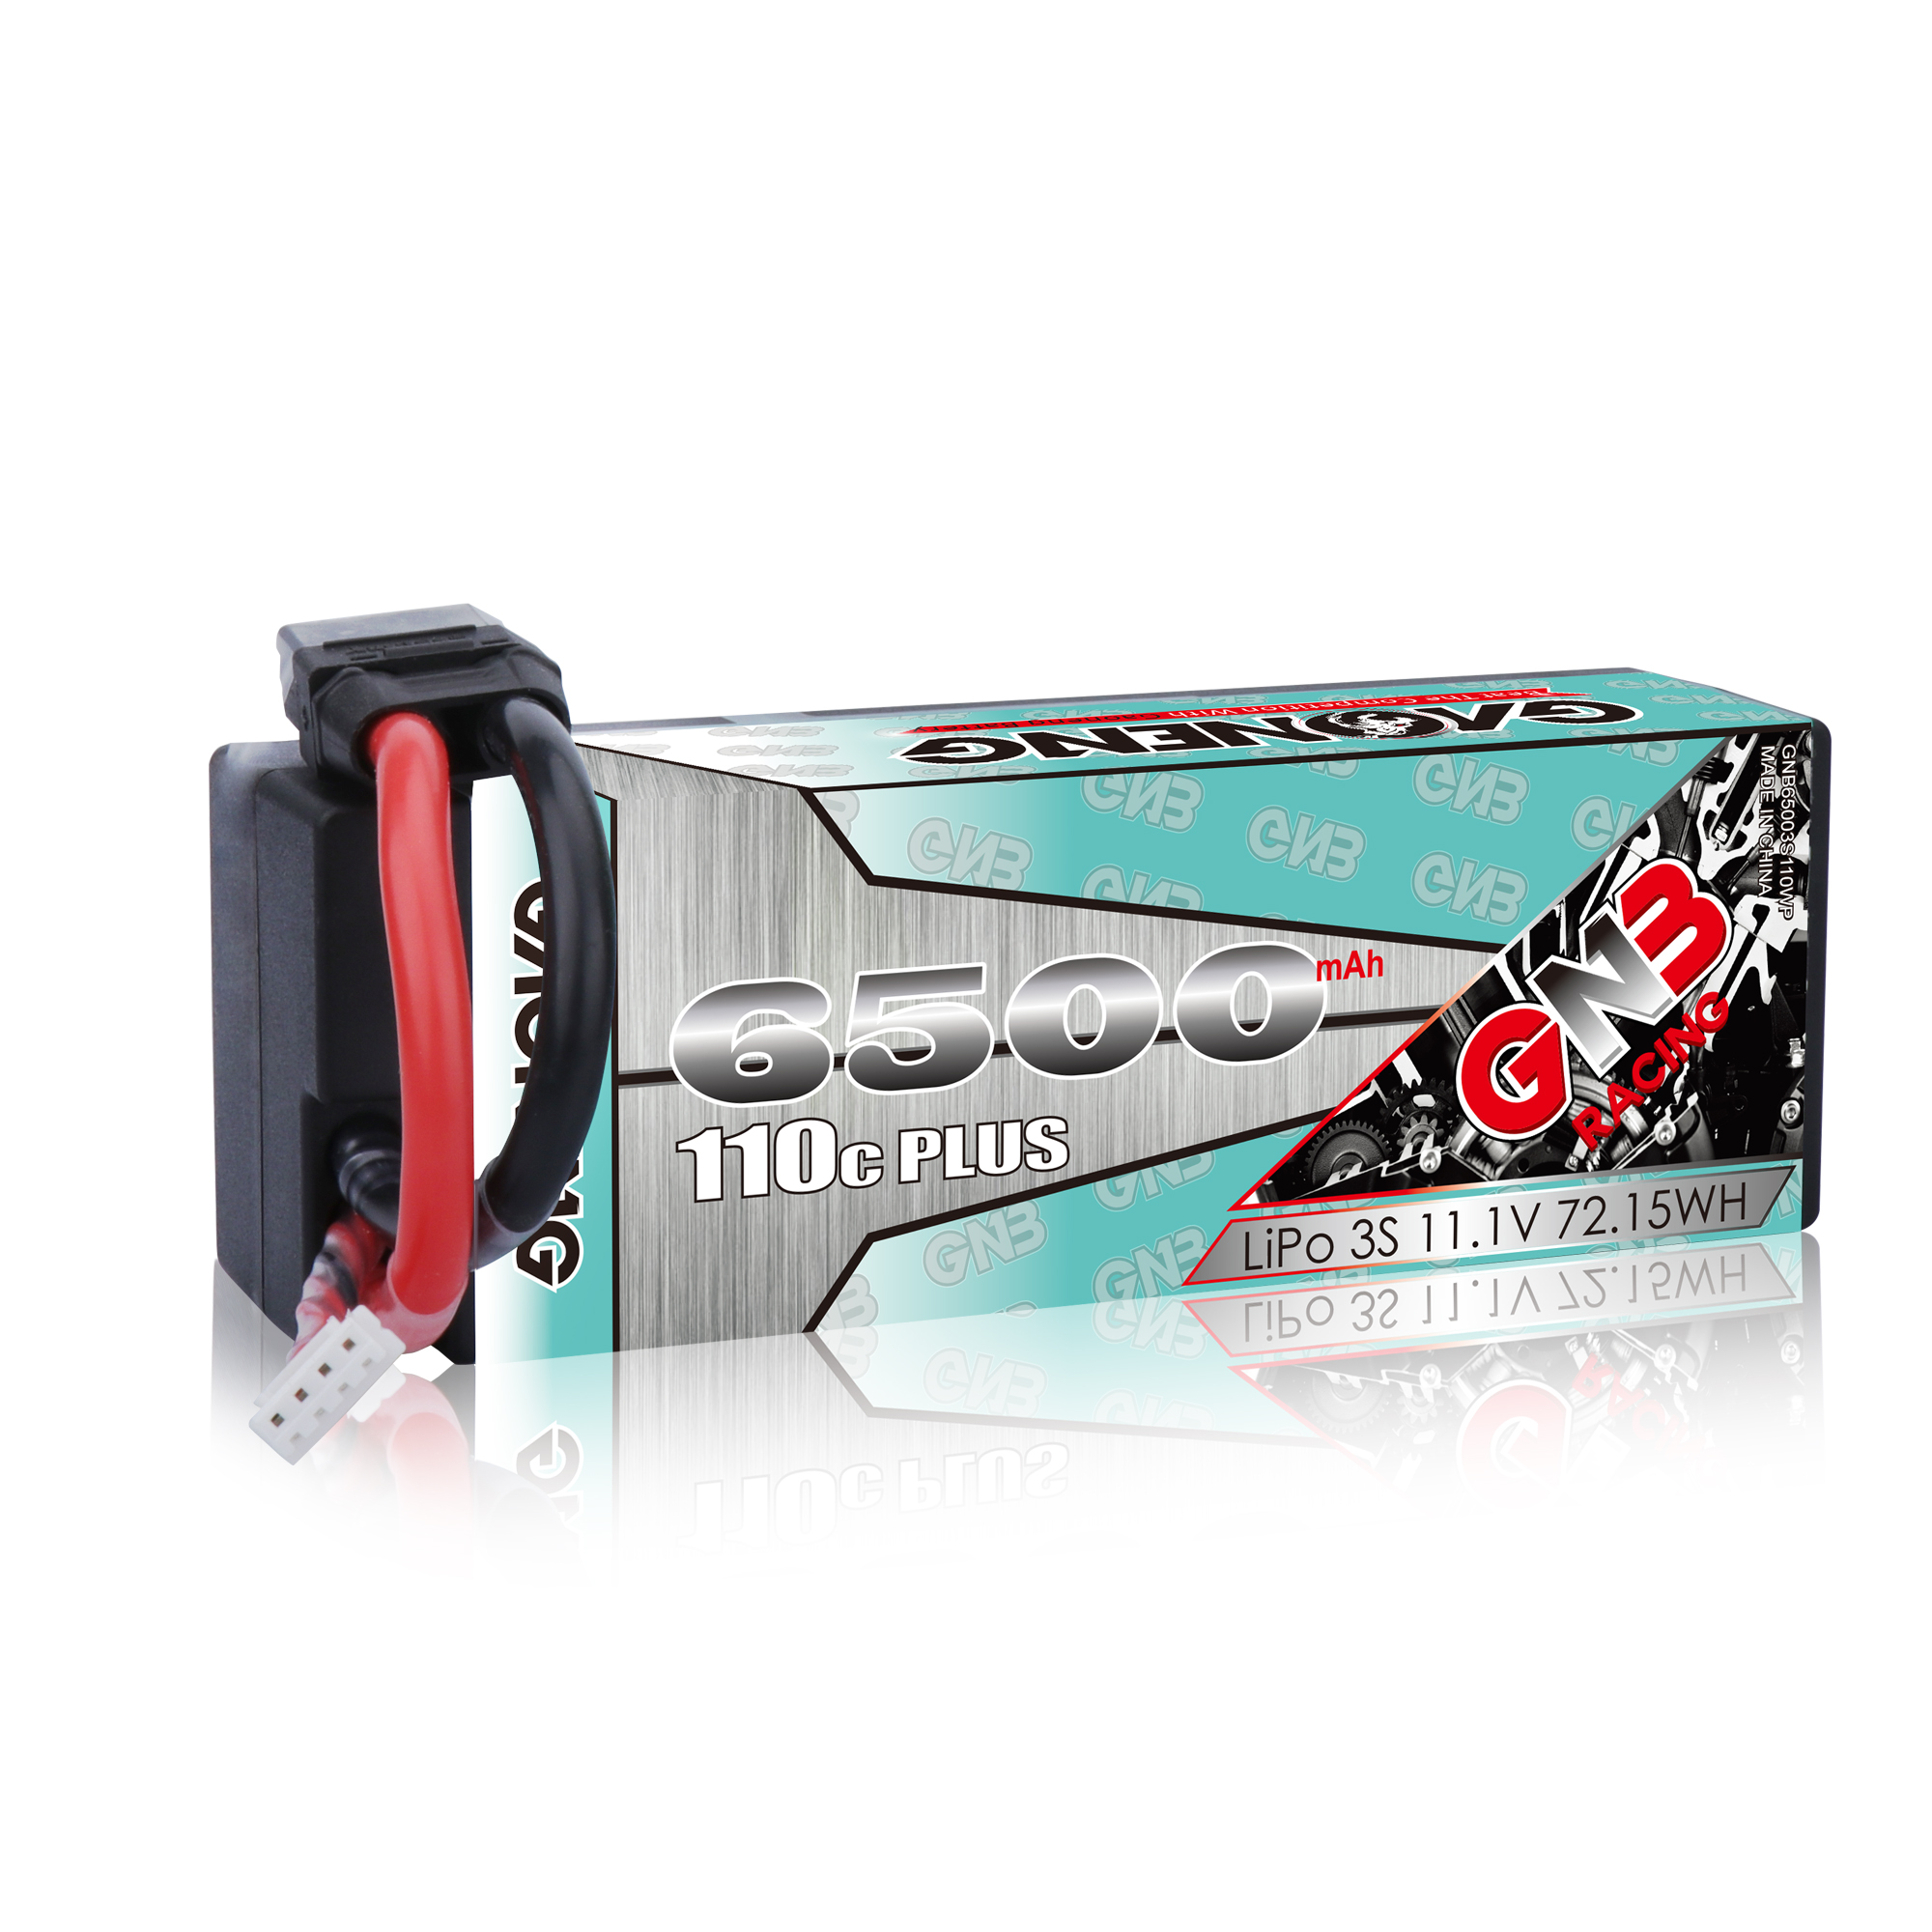 GNB GAONENG LiPo Battery 6500MAH 3S2P Black Balance 11.1V 110C PLUS hardcase cabled with Red T-PLUG